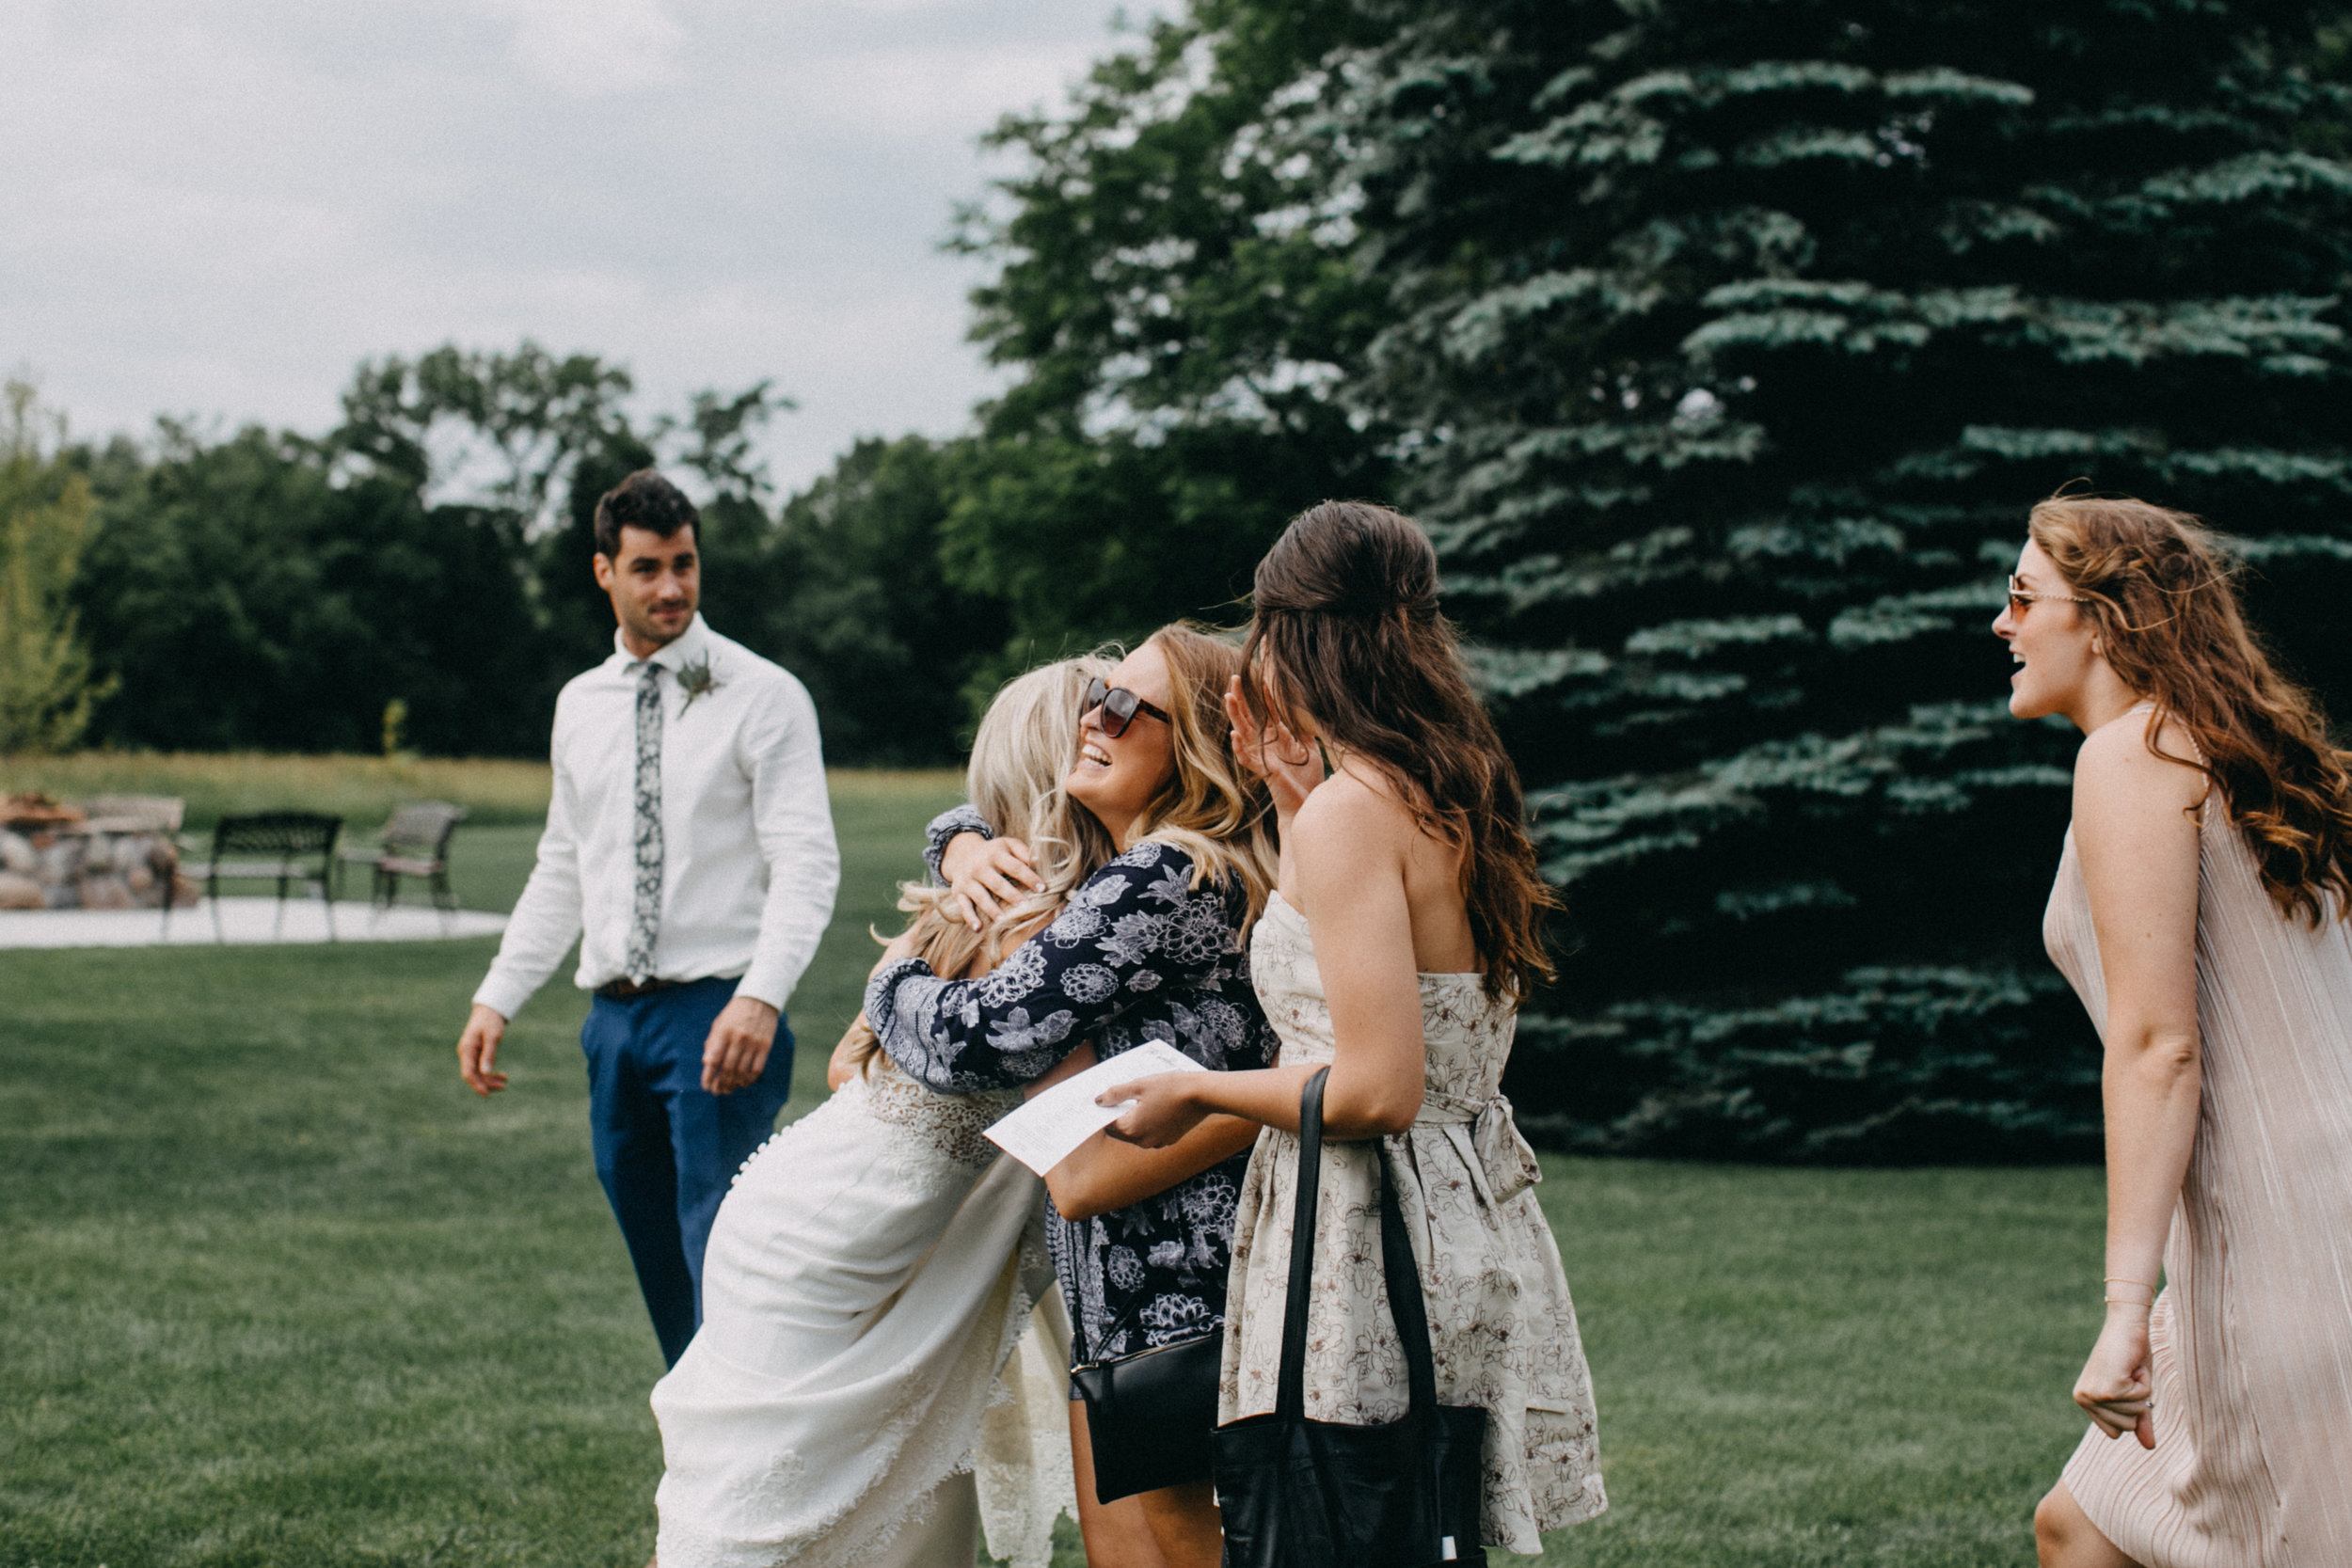 Emotional and candid moment of bride with friends during wedding reception at Creekside Farm wedding in Rush City photographed by Britt DeZeeuw